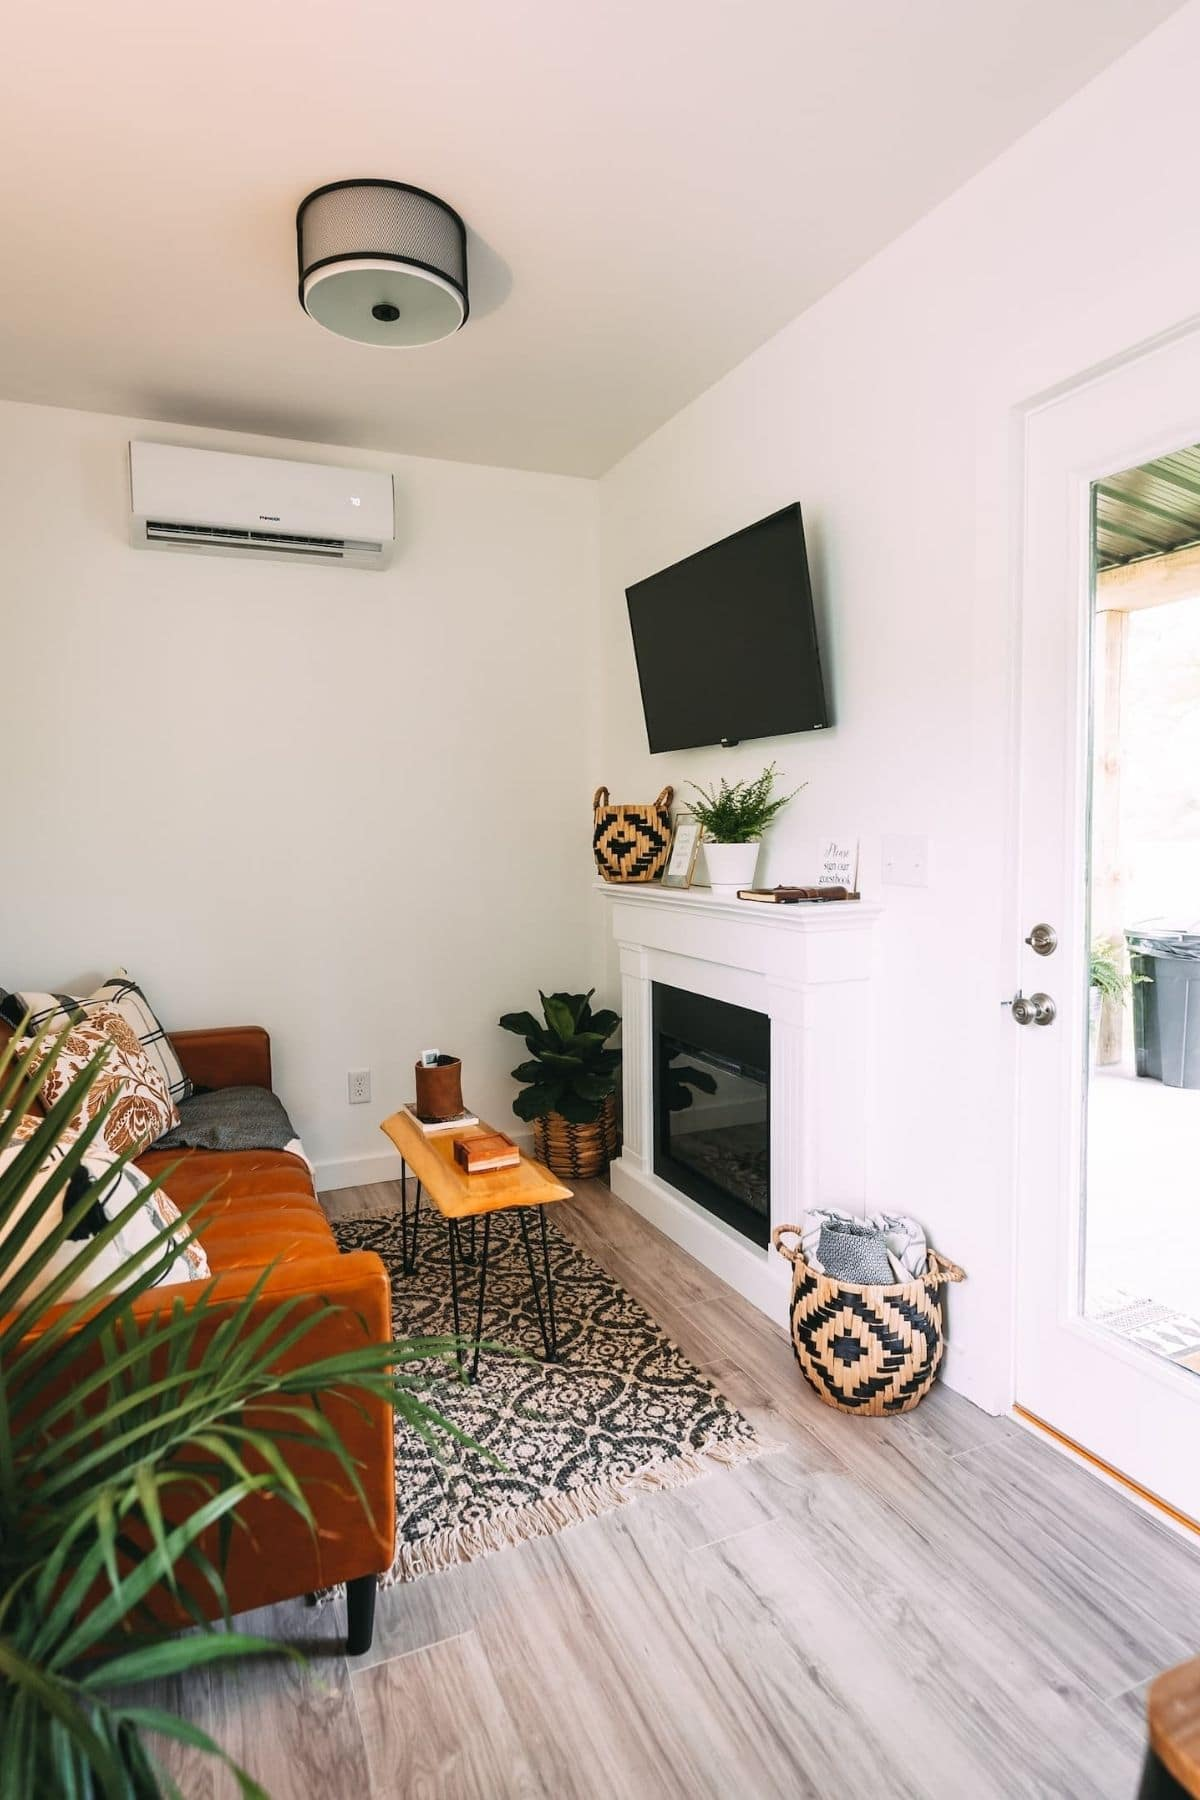 Tiny living area with white walls and fireplace below TV